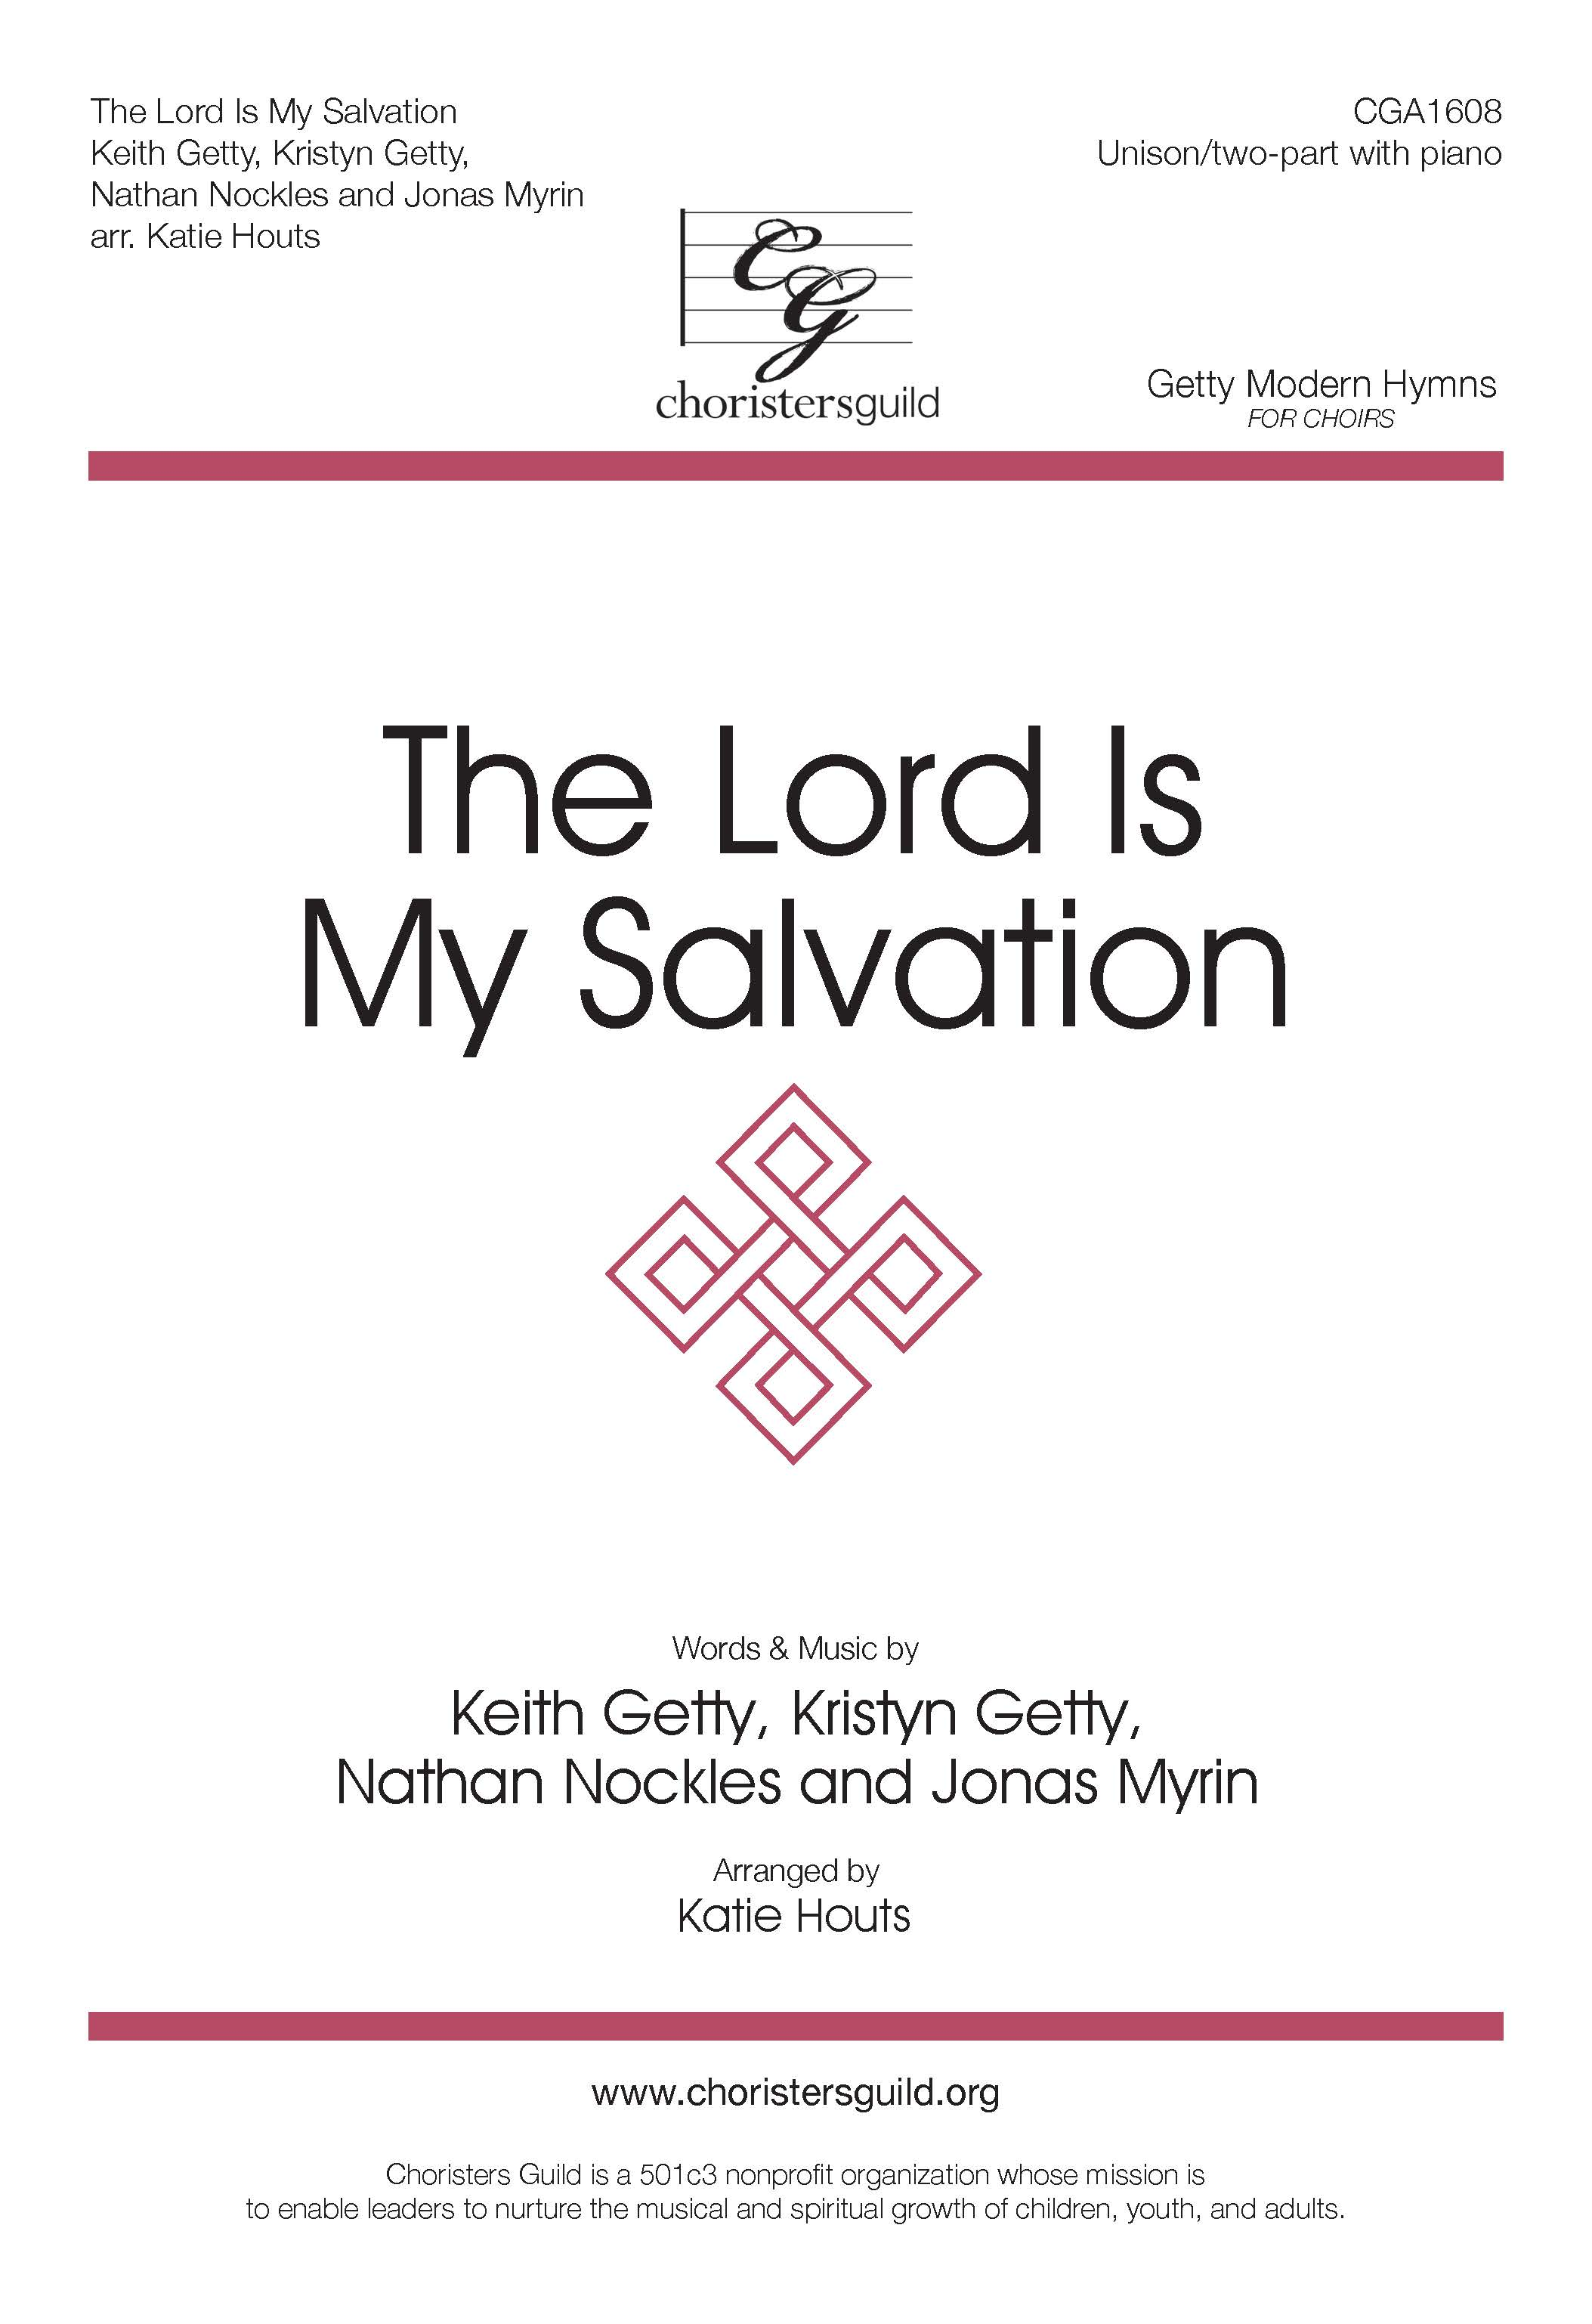 The Lord is My Salvation - Unison/Two-part